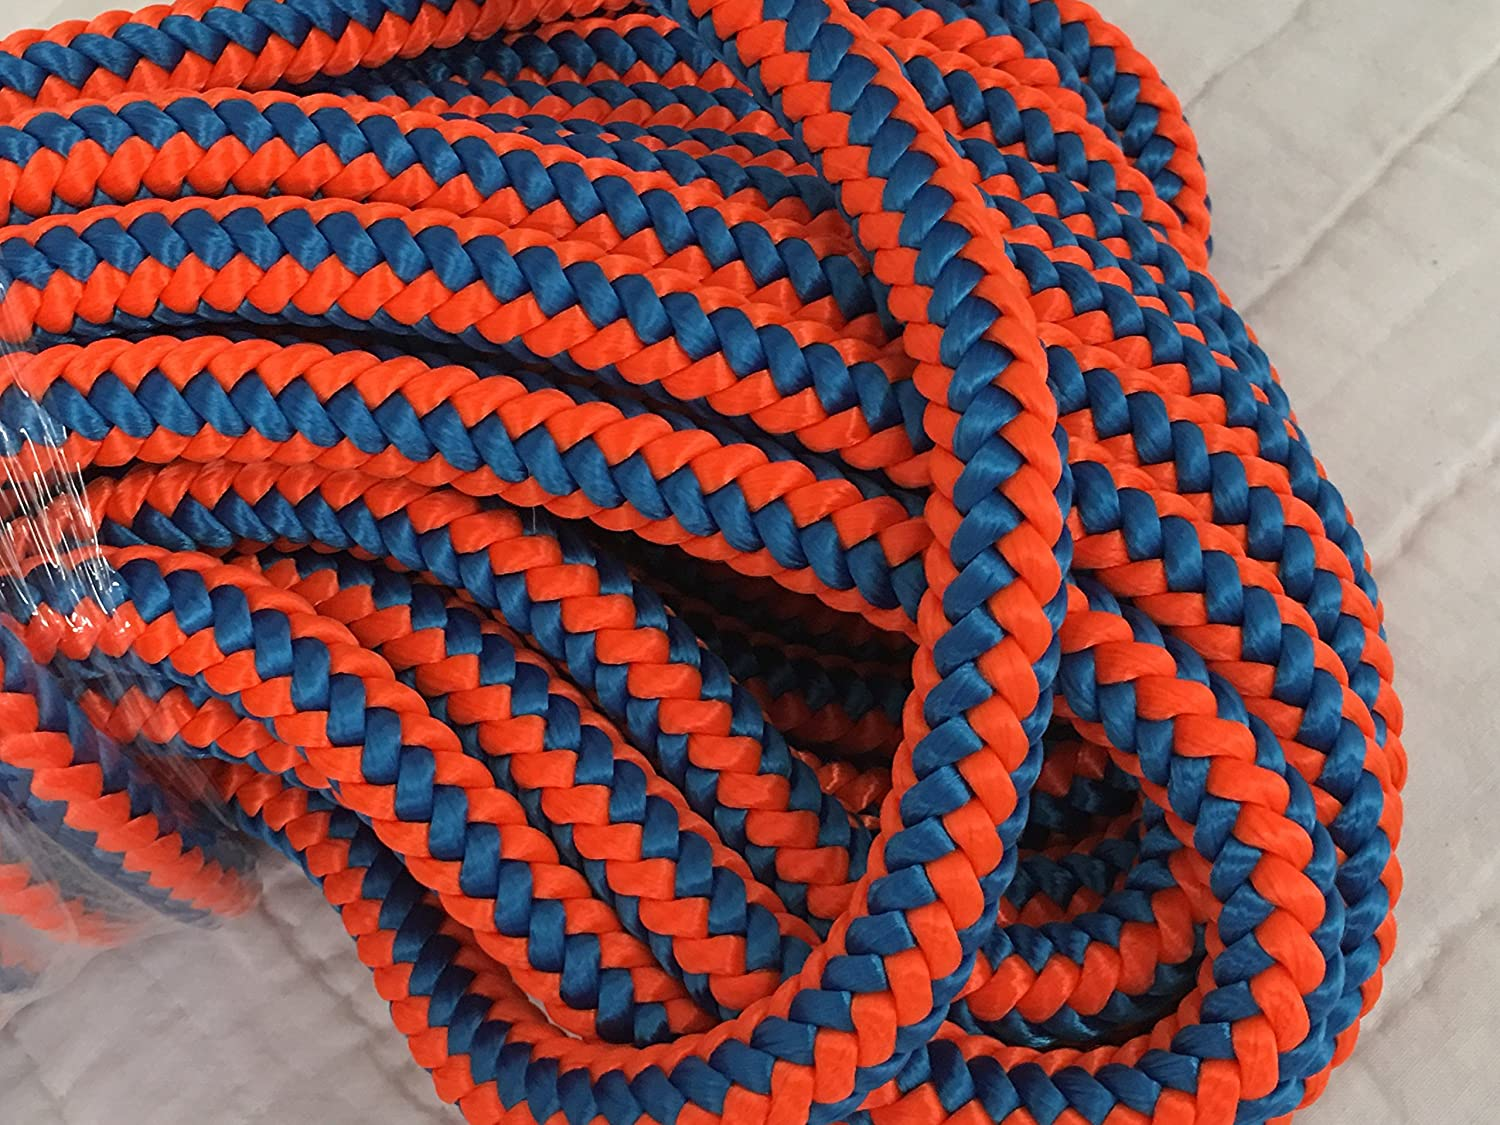 12 Strand Max 73% OFF Arborist Polyester Rope 1 Special price for a limited time 60 2 Blue by feet Orange